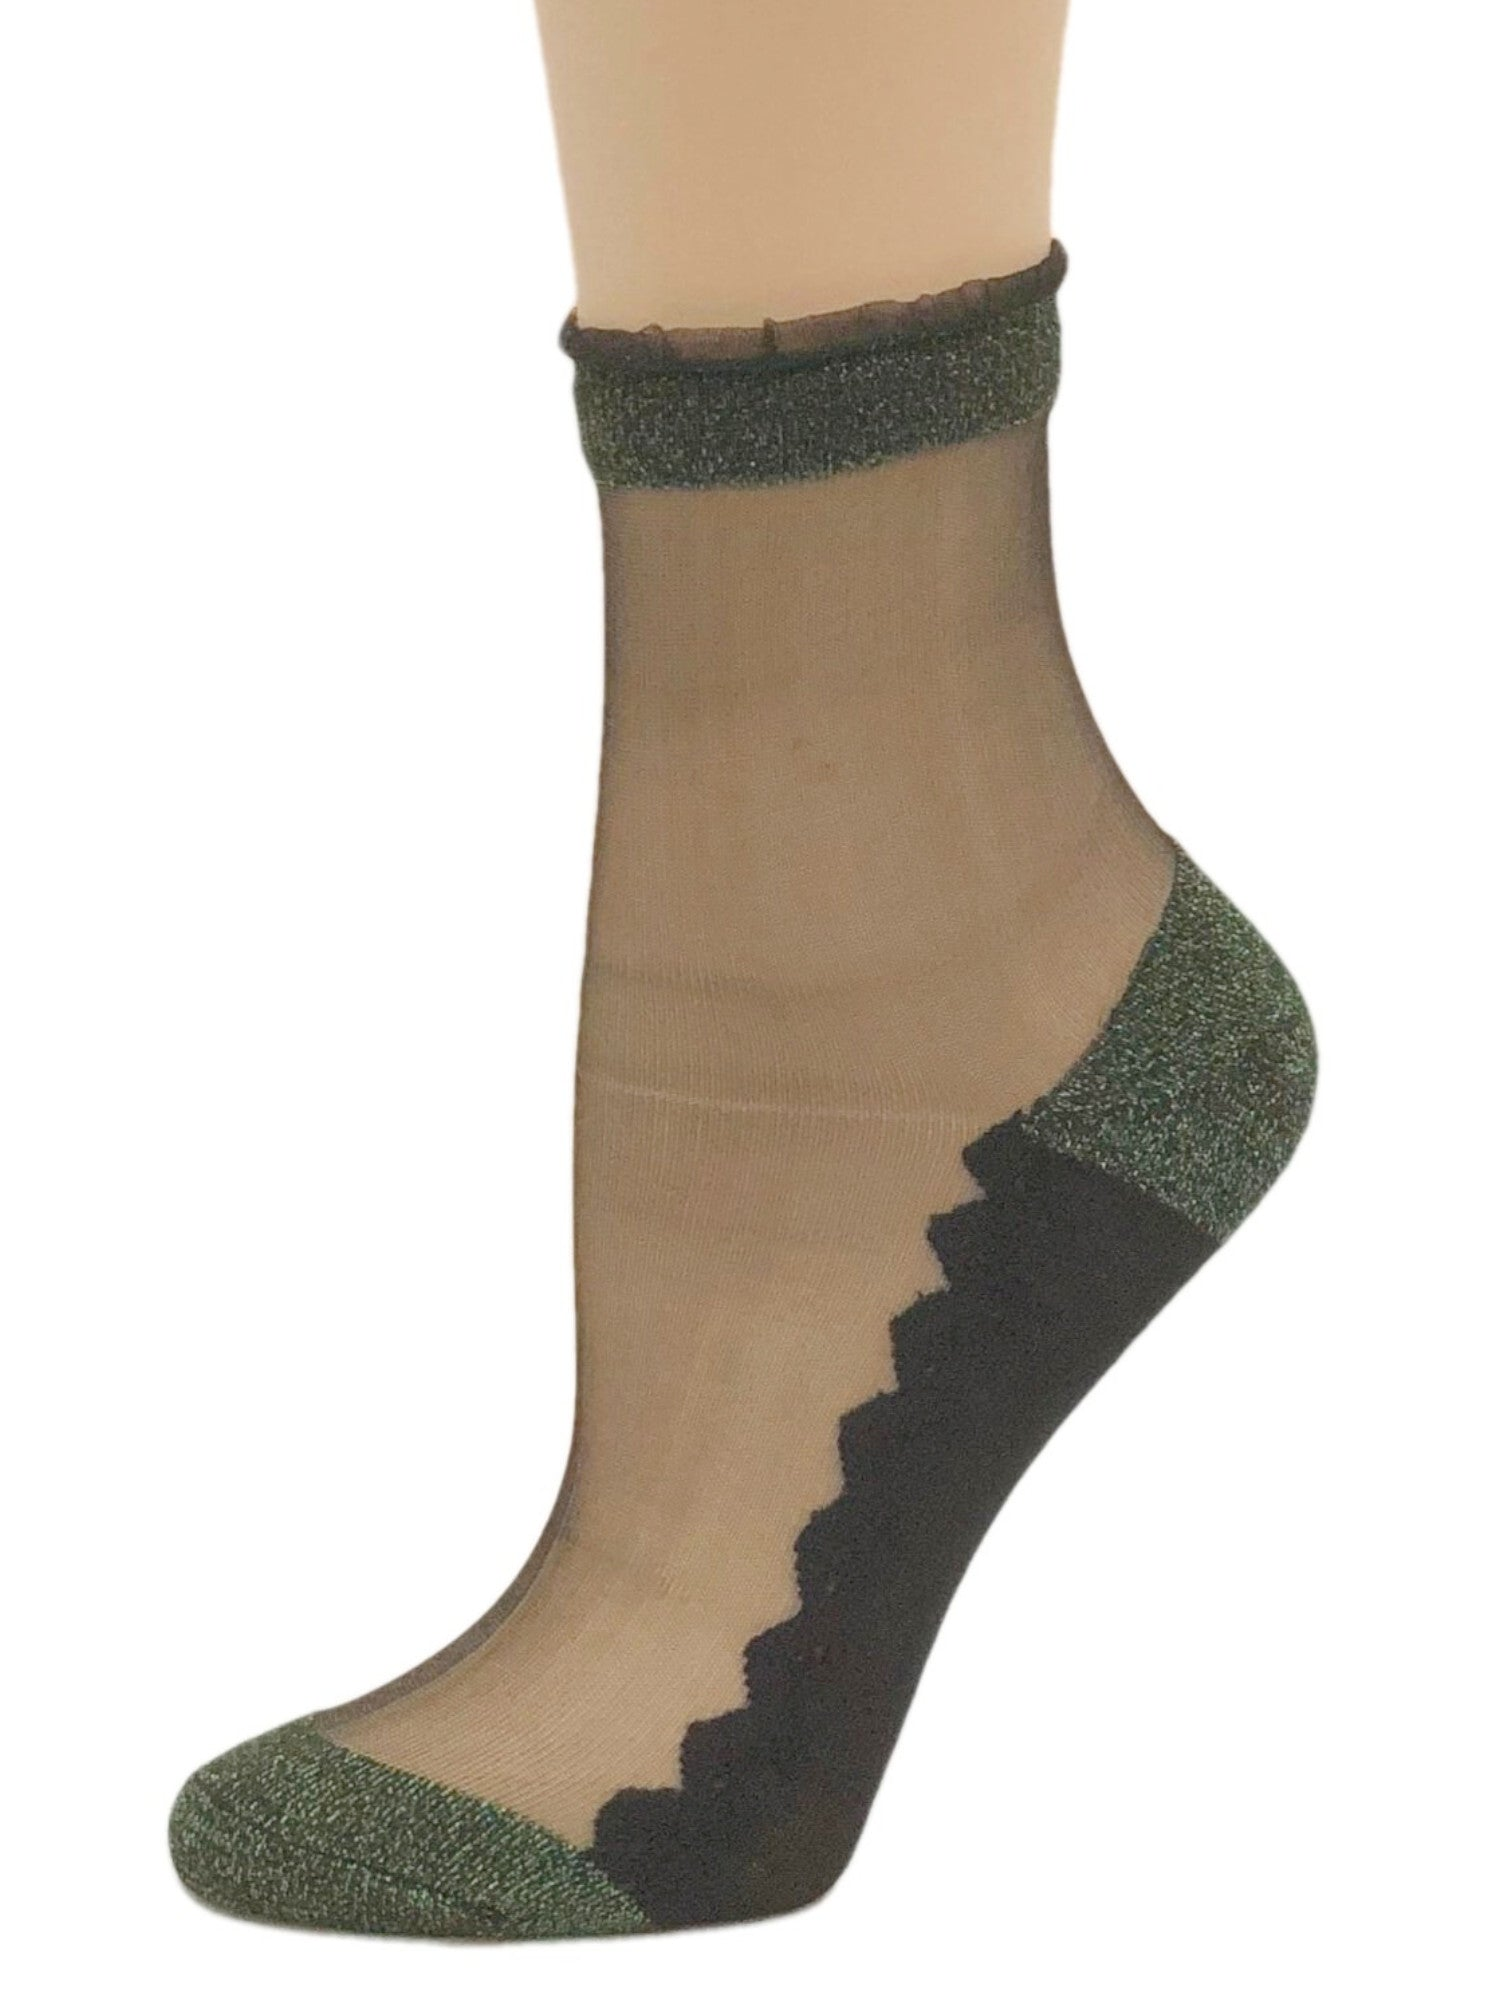 Charming Green Glitter Socks - Global Trendz Fashion®